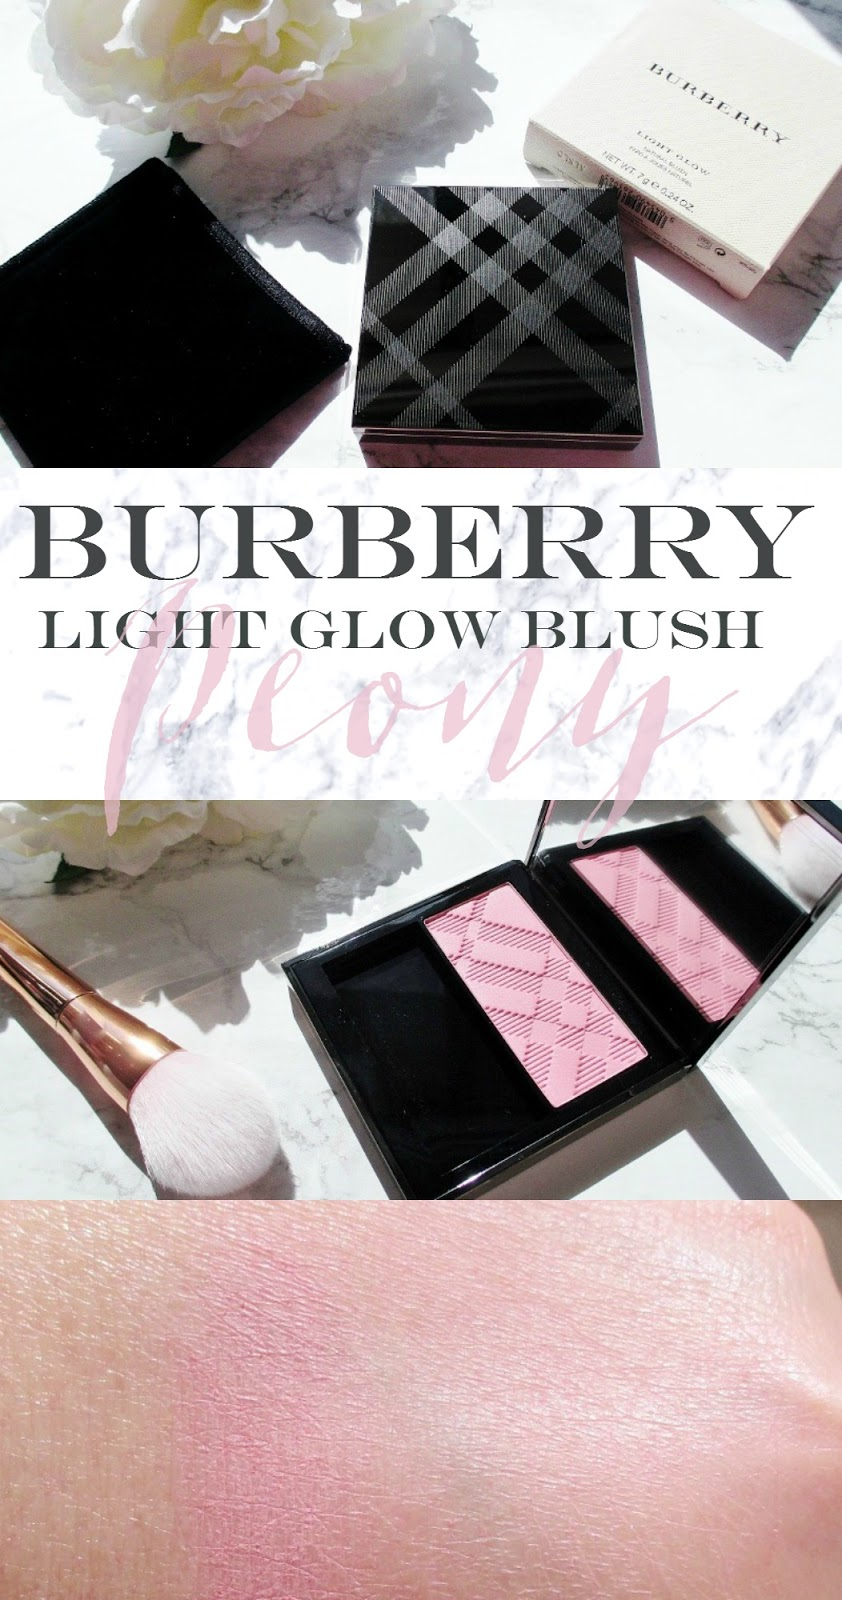 burberry-light-glow-blush-peony-3